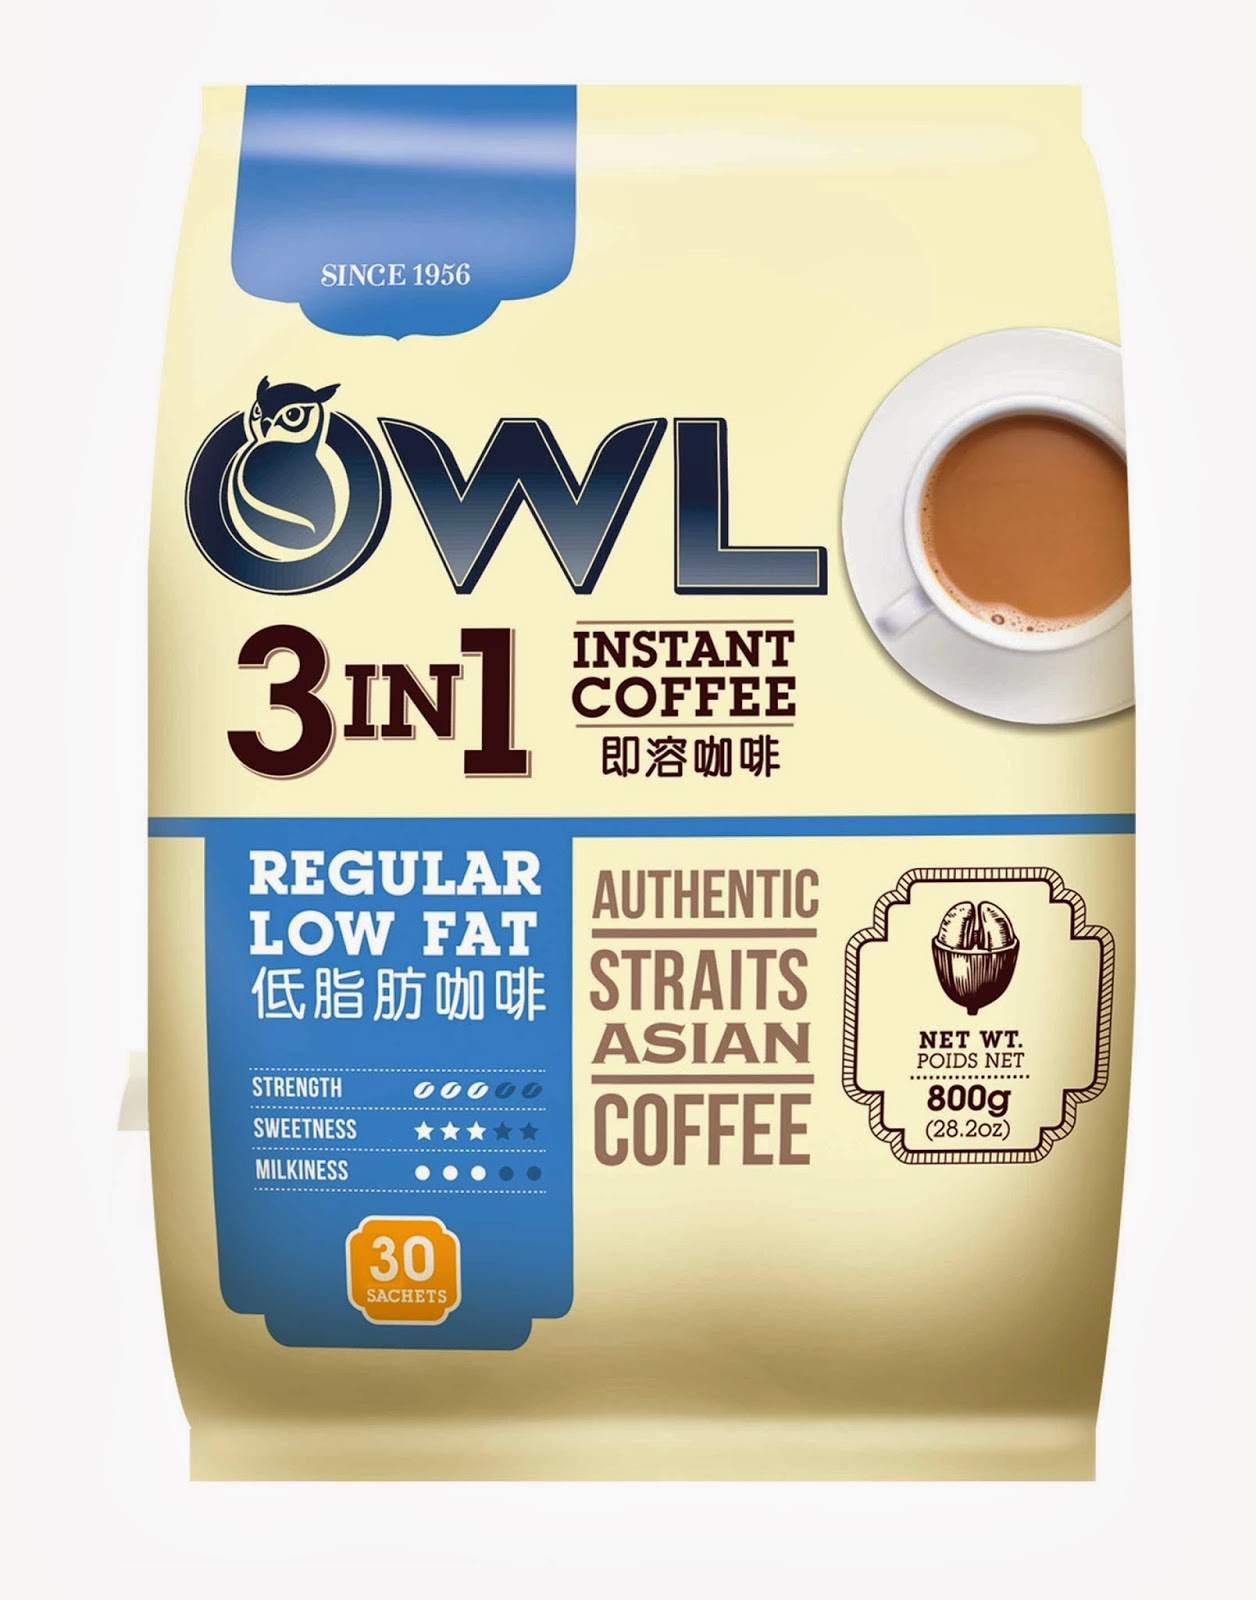 3-in-1 Instant Coffee Regular Low Fat